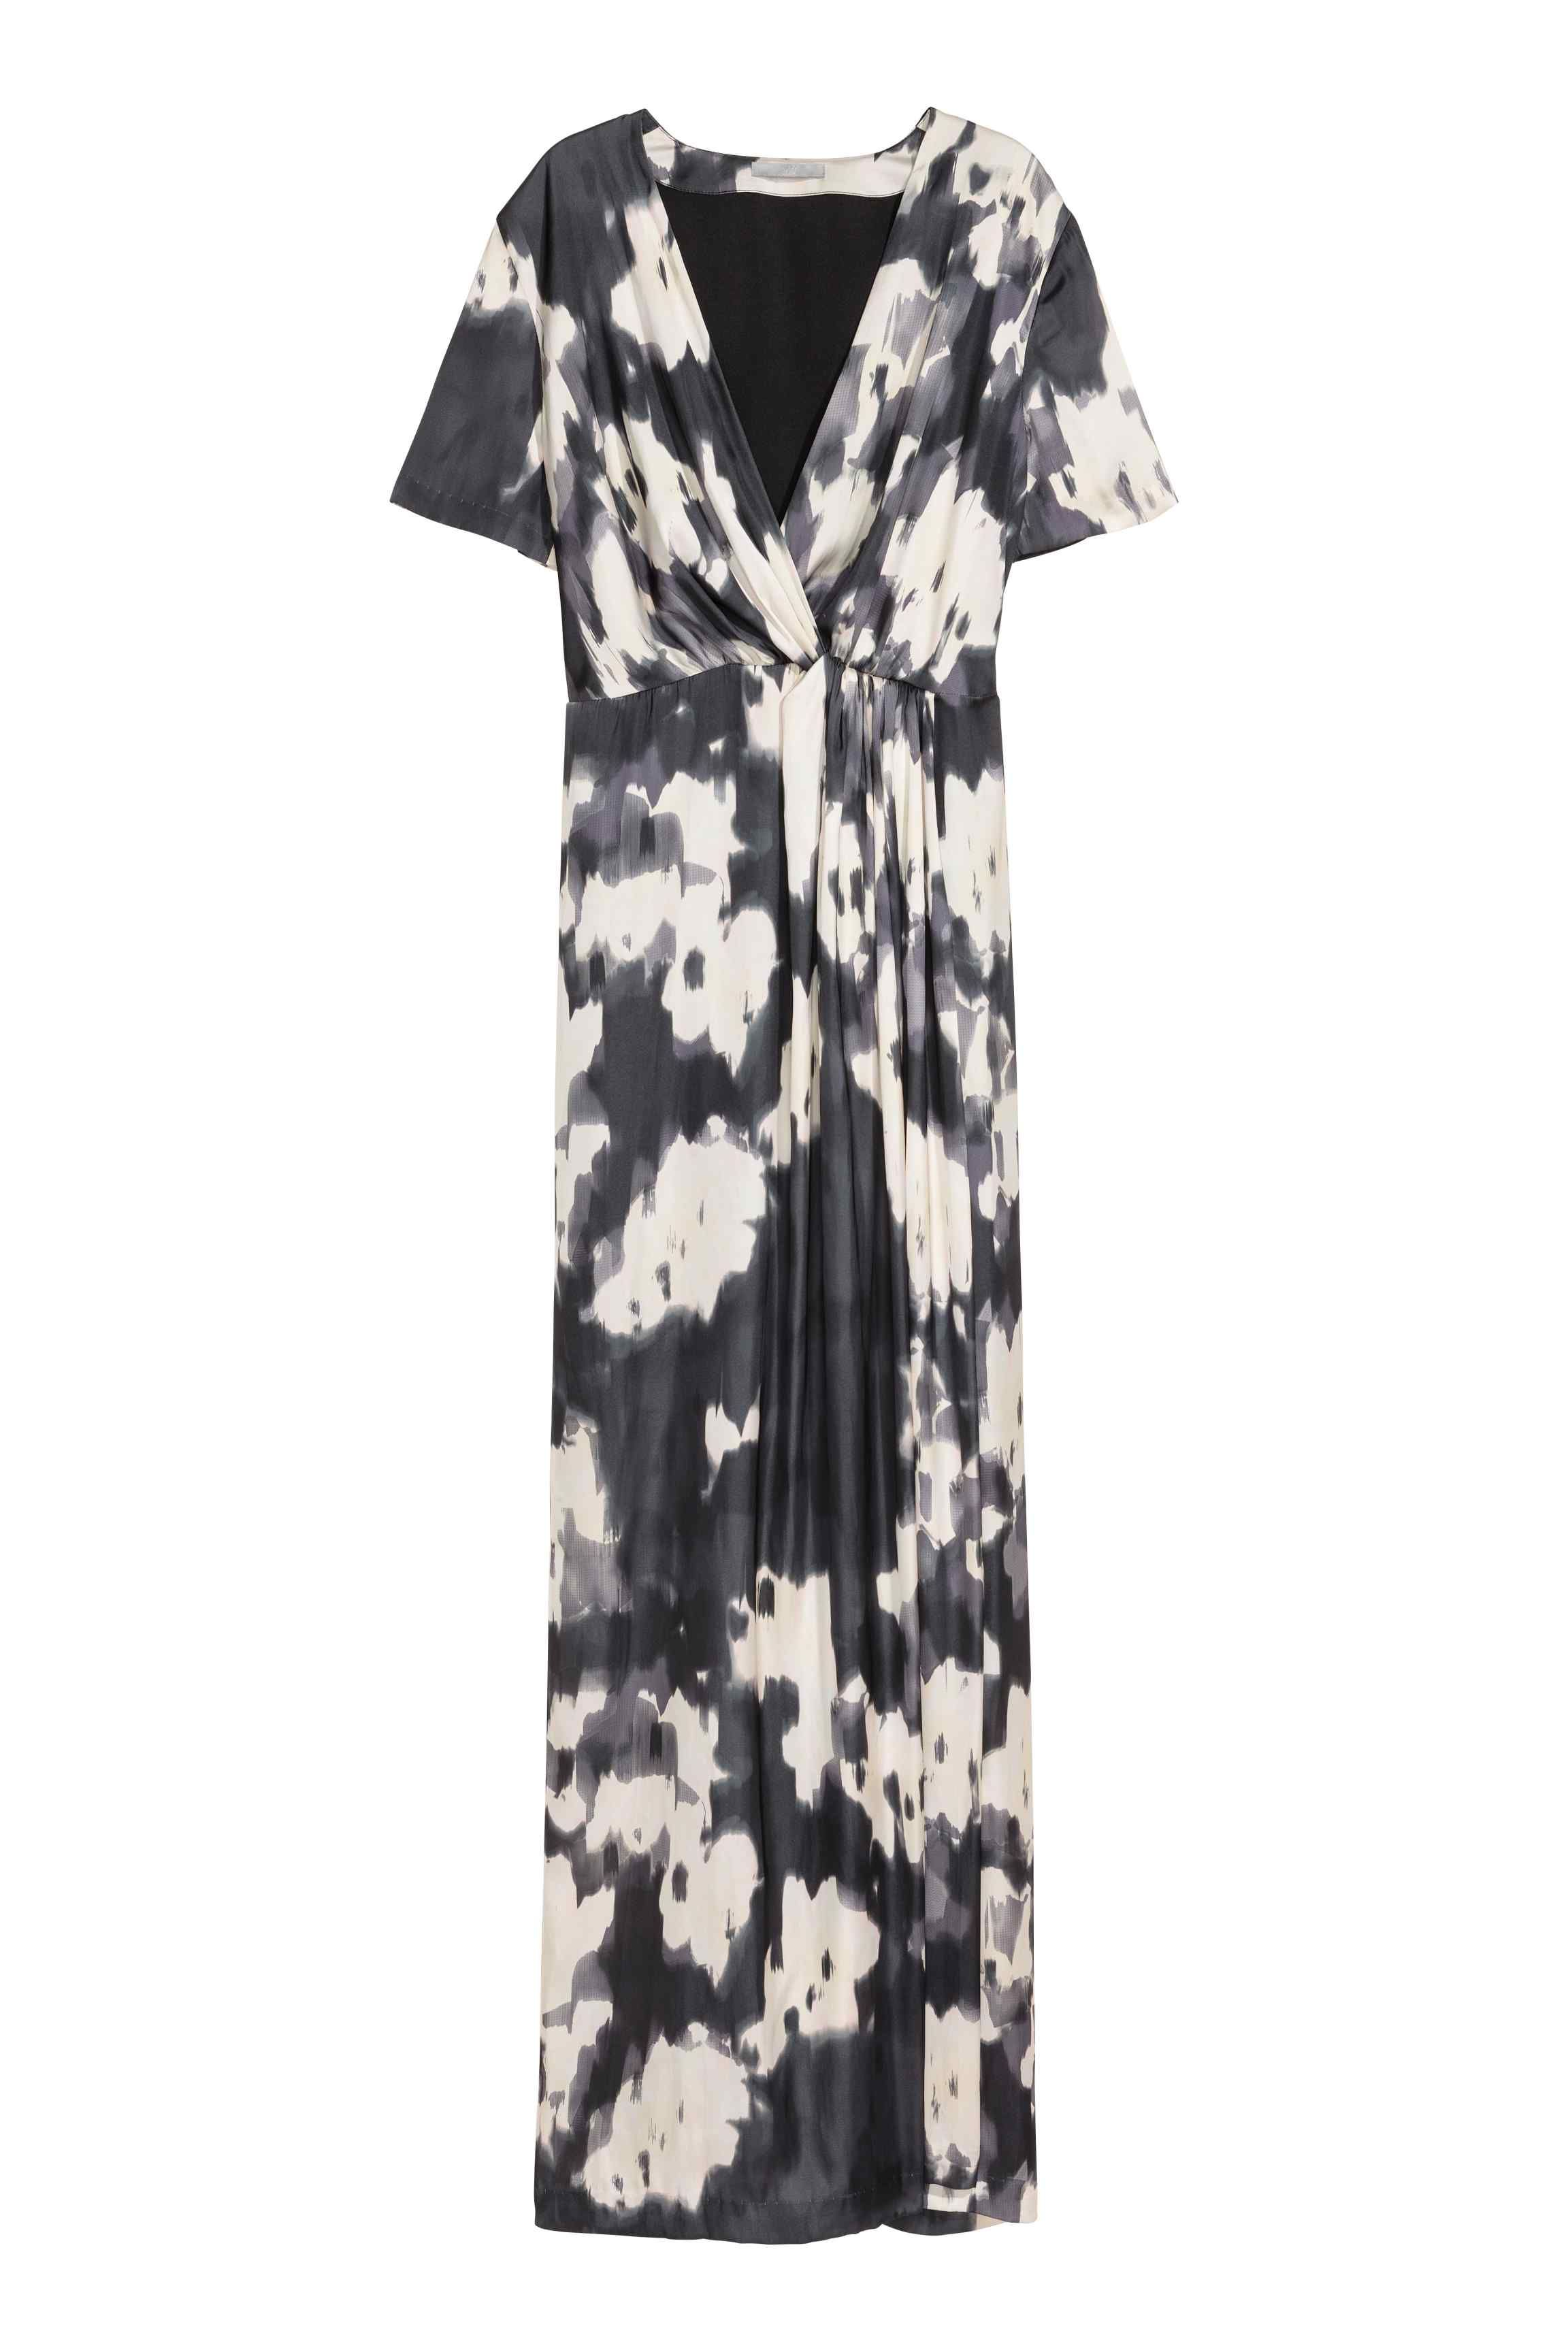 Long maxi satin black and white wrap dress wiht shoret sleeeves in